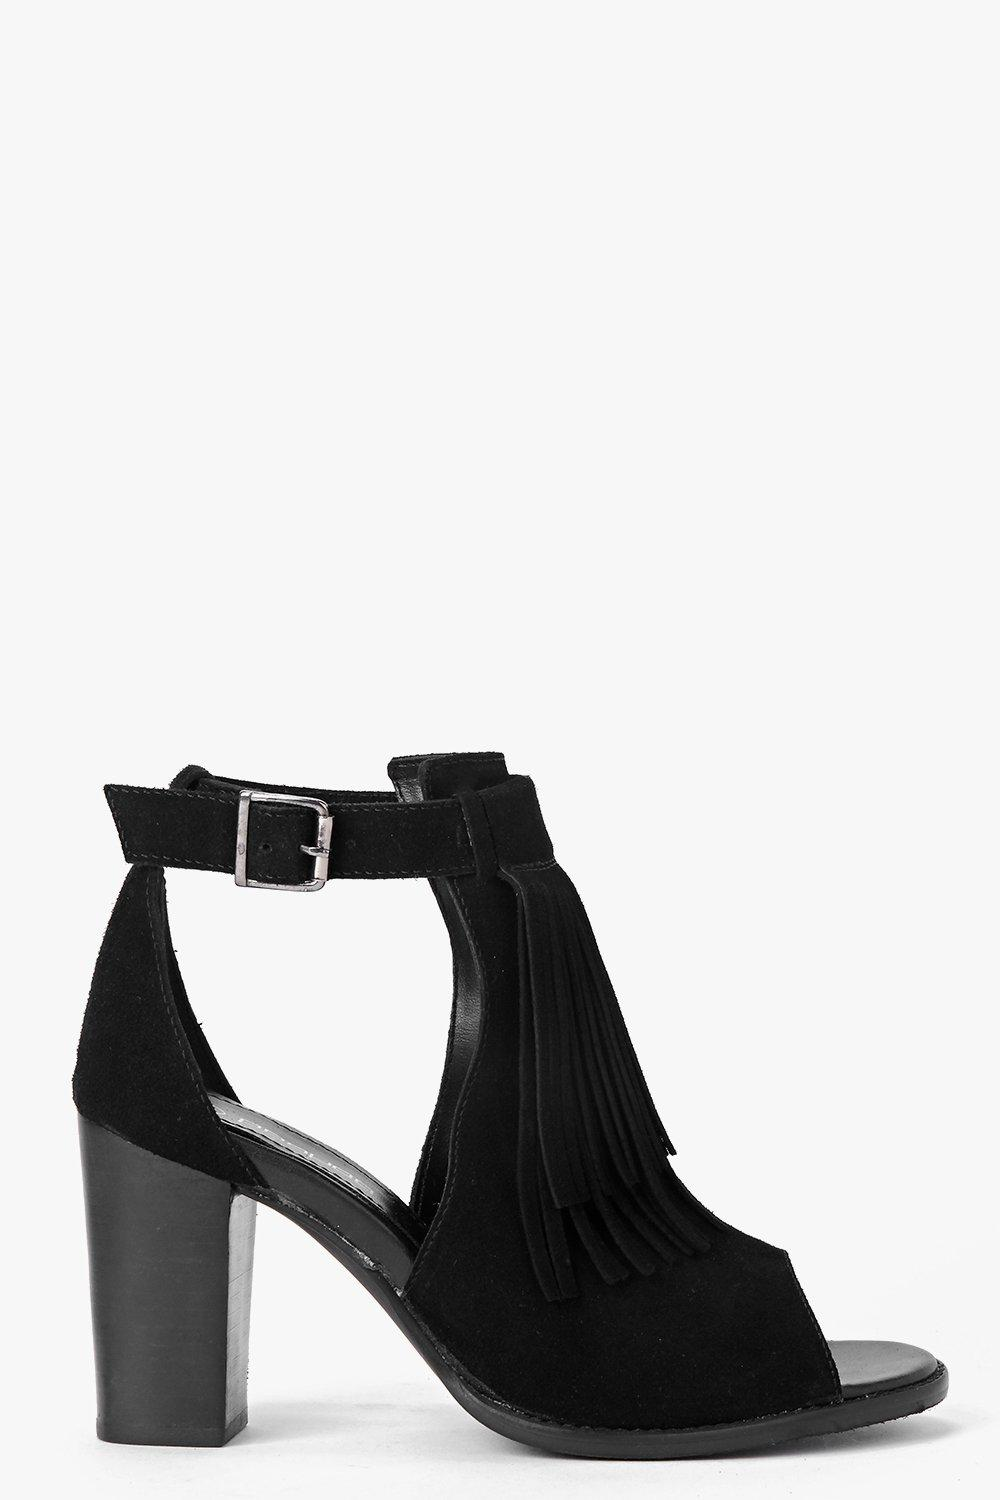 Boutique Emily Suede Fringed Trim Cut Work Sandal